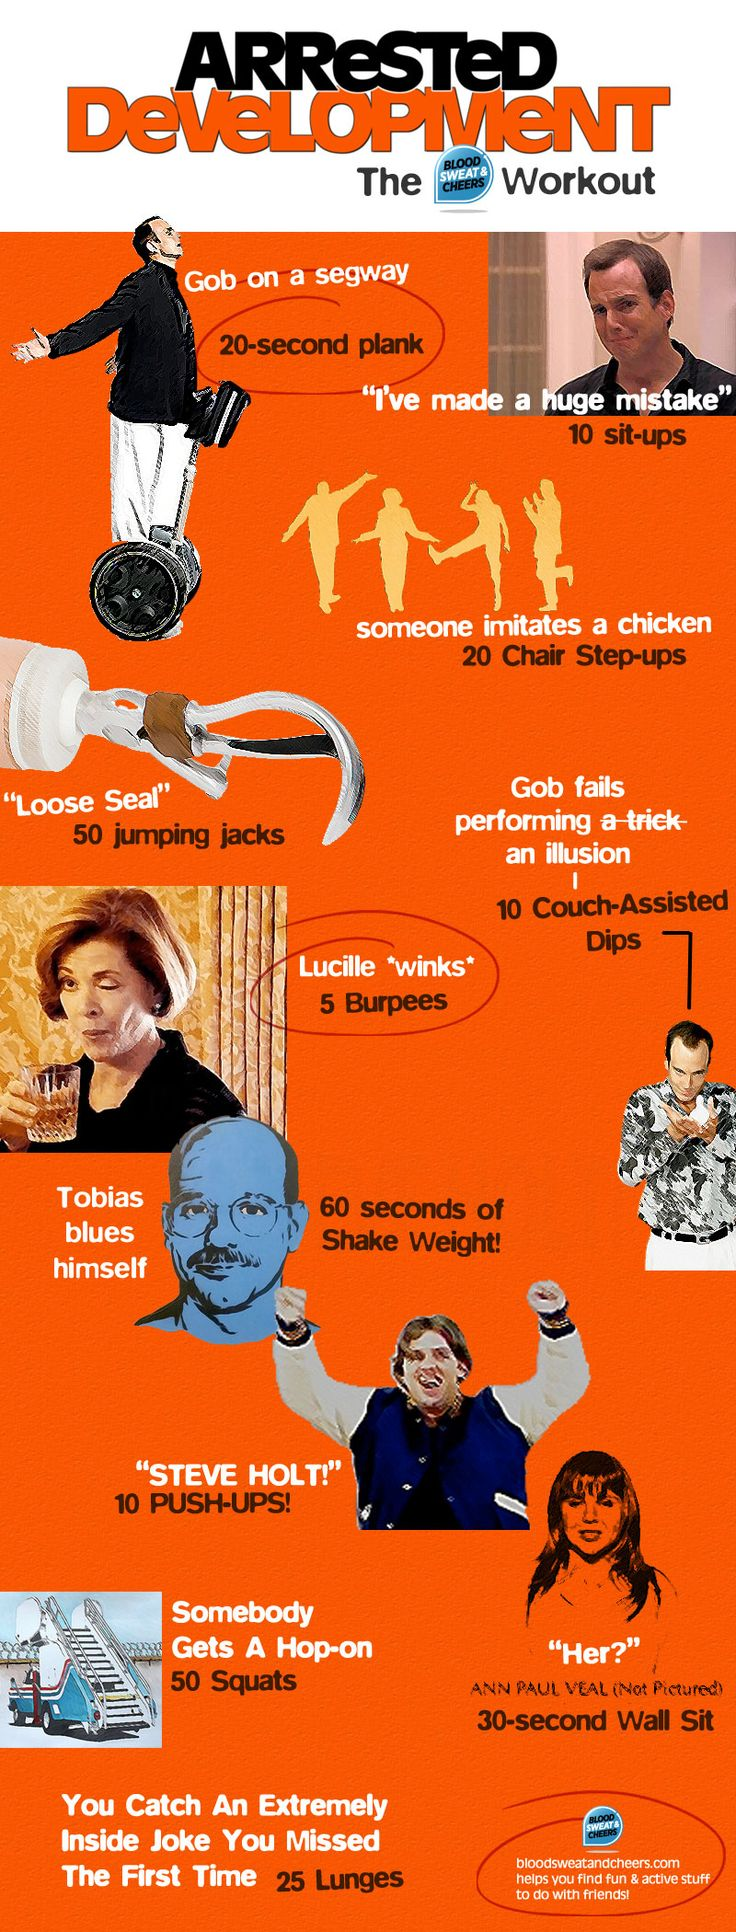 Arrested Development Workout - Make a series of huge mistakes and workout with Netflixs new/old series!